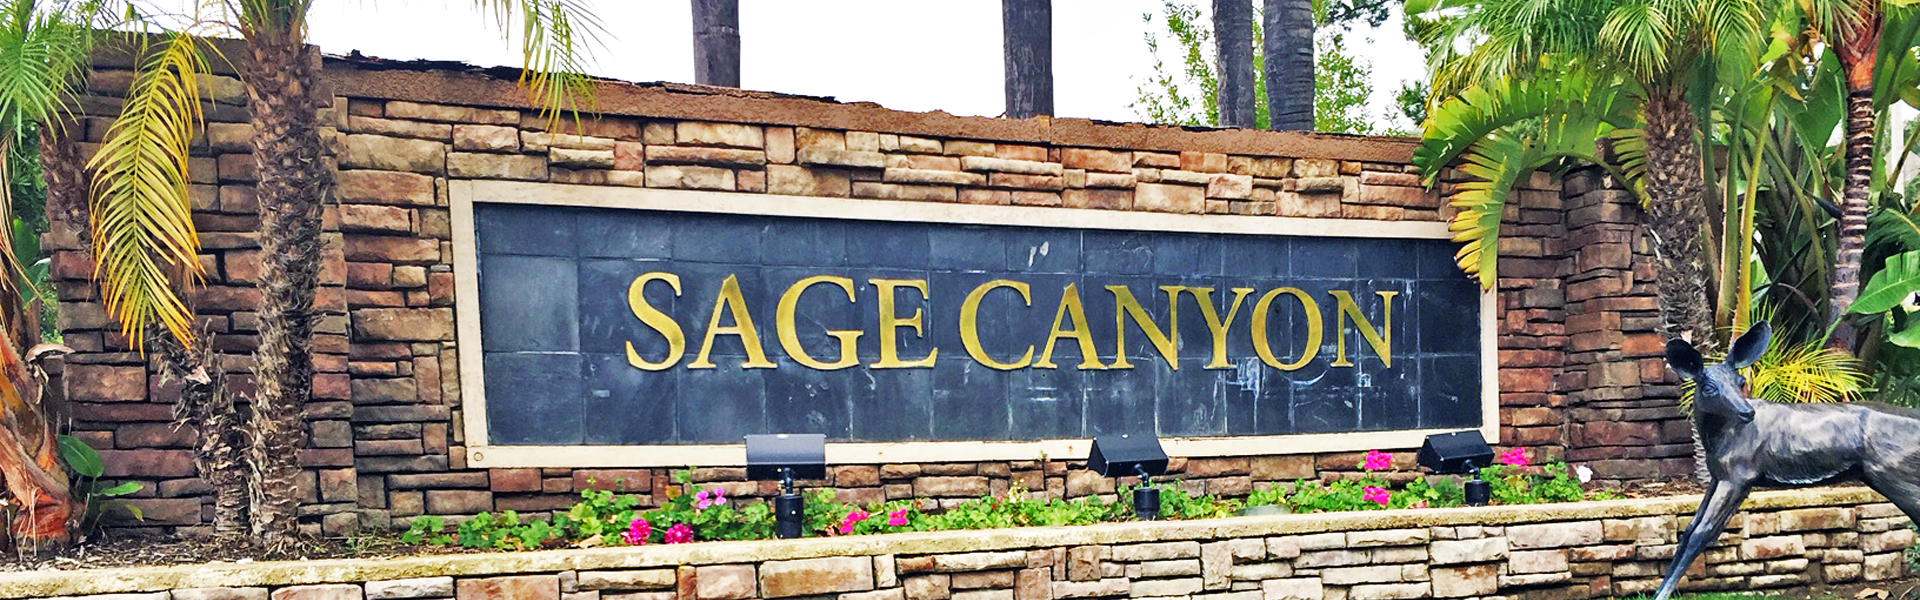 Welcome to Sage Canyon Maintenance Corporation!